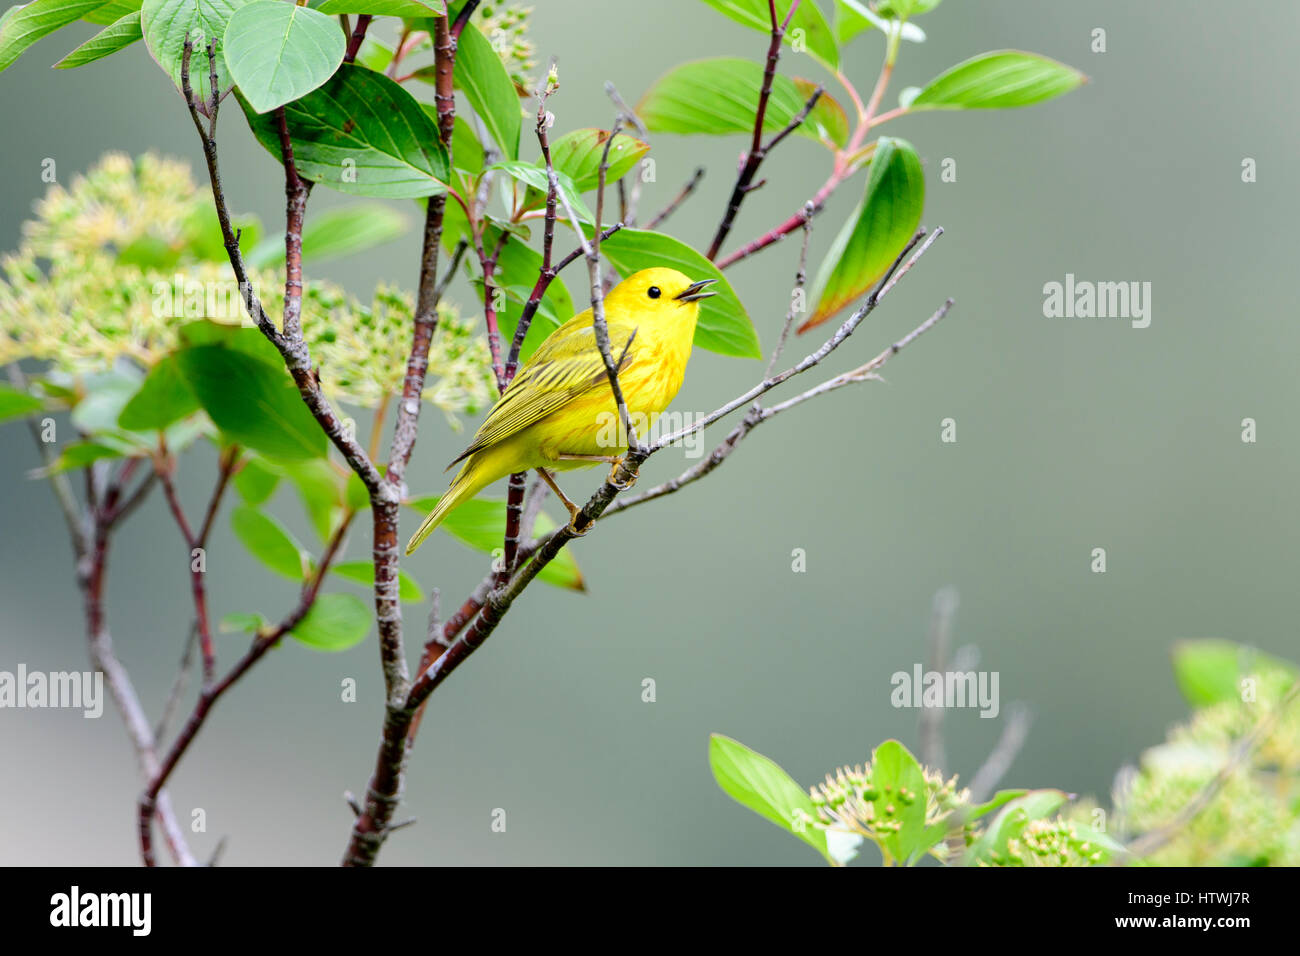 A singing Yellow Warbler (Dendroica petechia), Montana - Stock Image